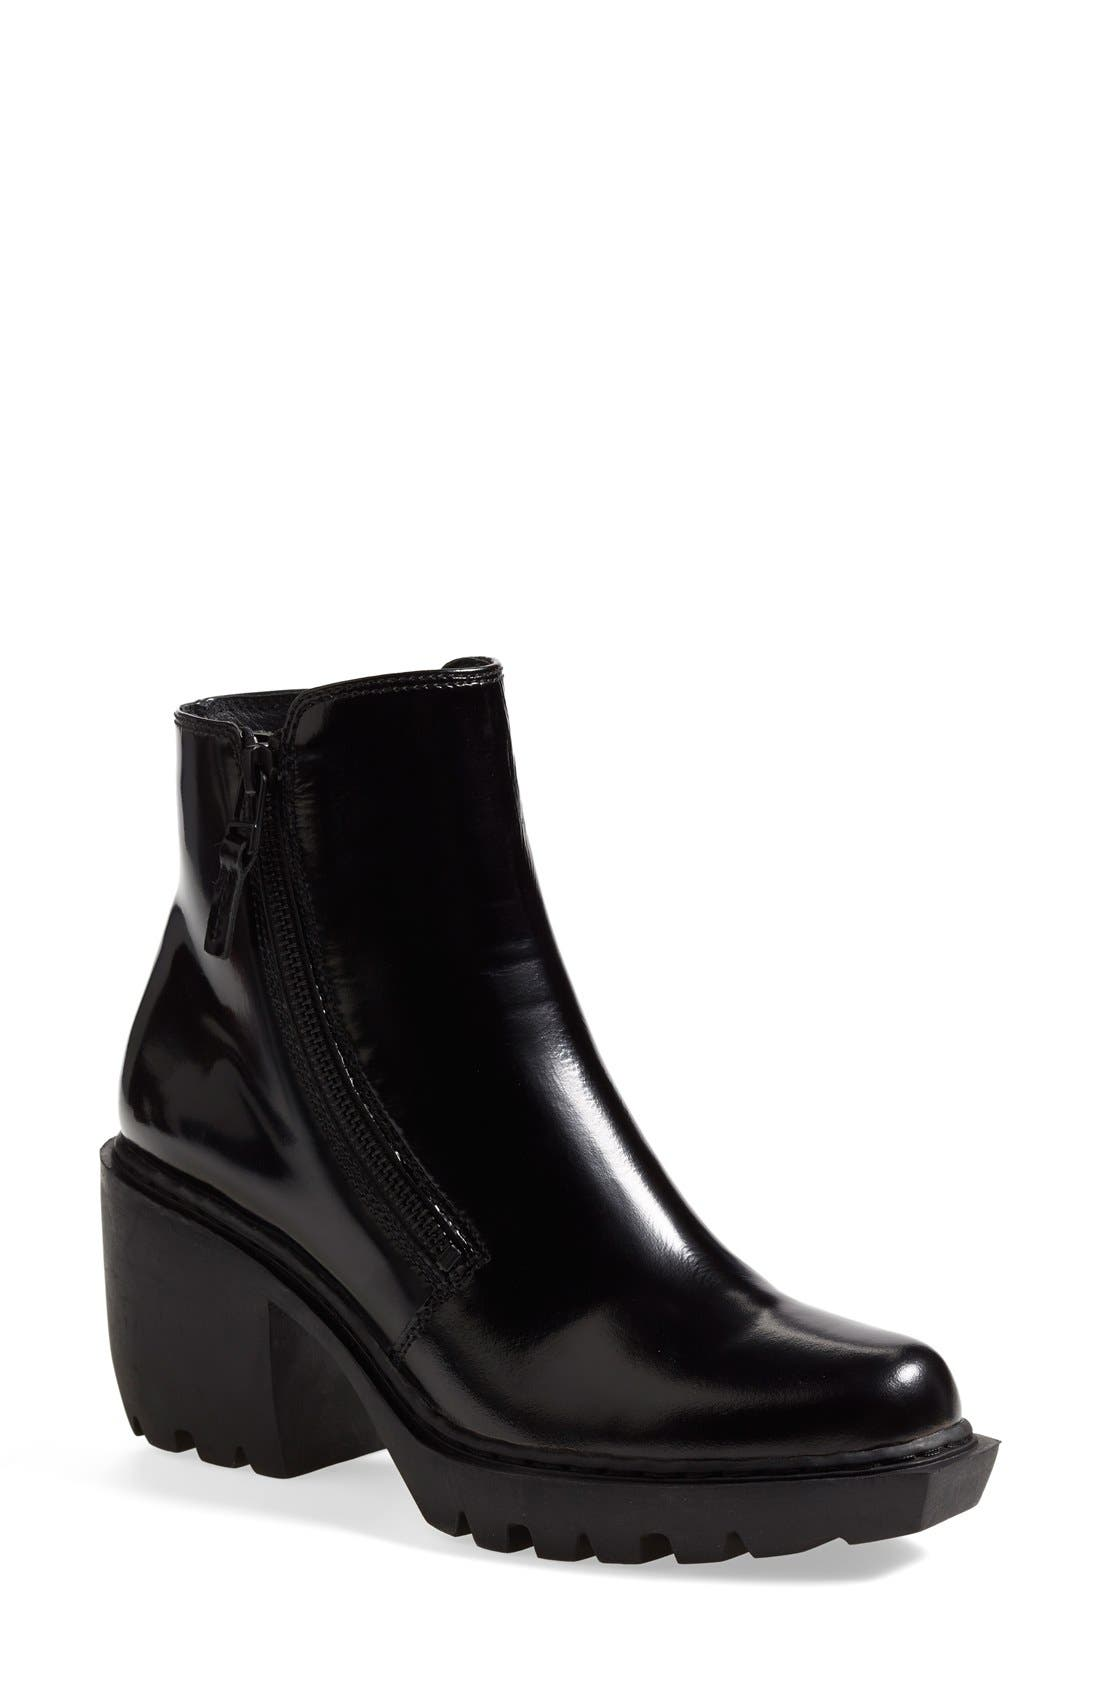 Main Image - Opening Ceremony 'Grunge' Double Zip Bootie